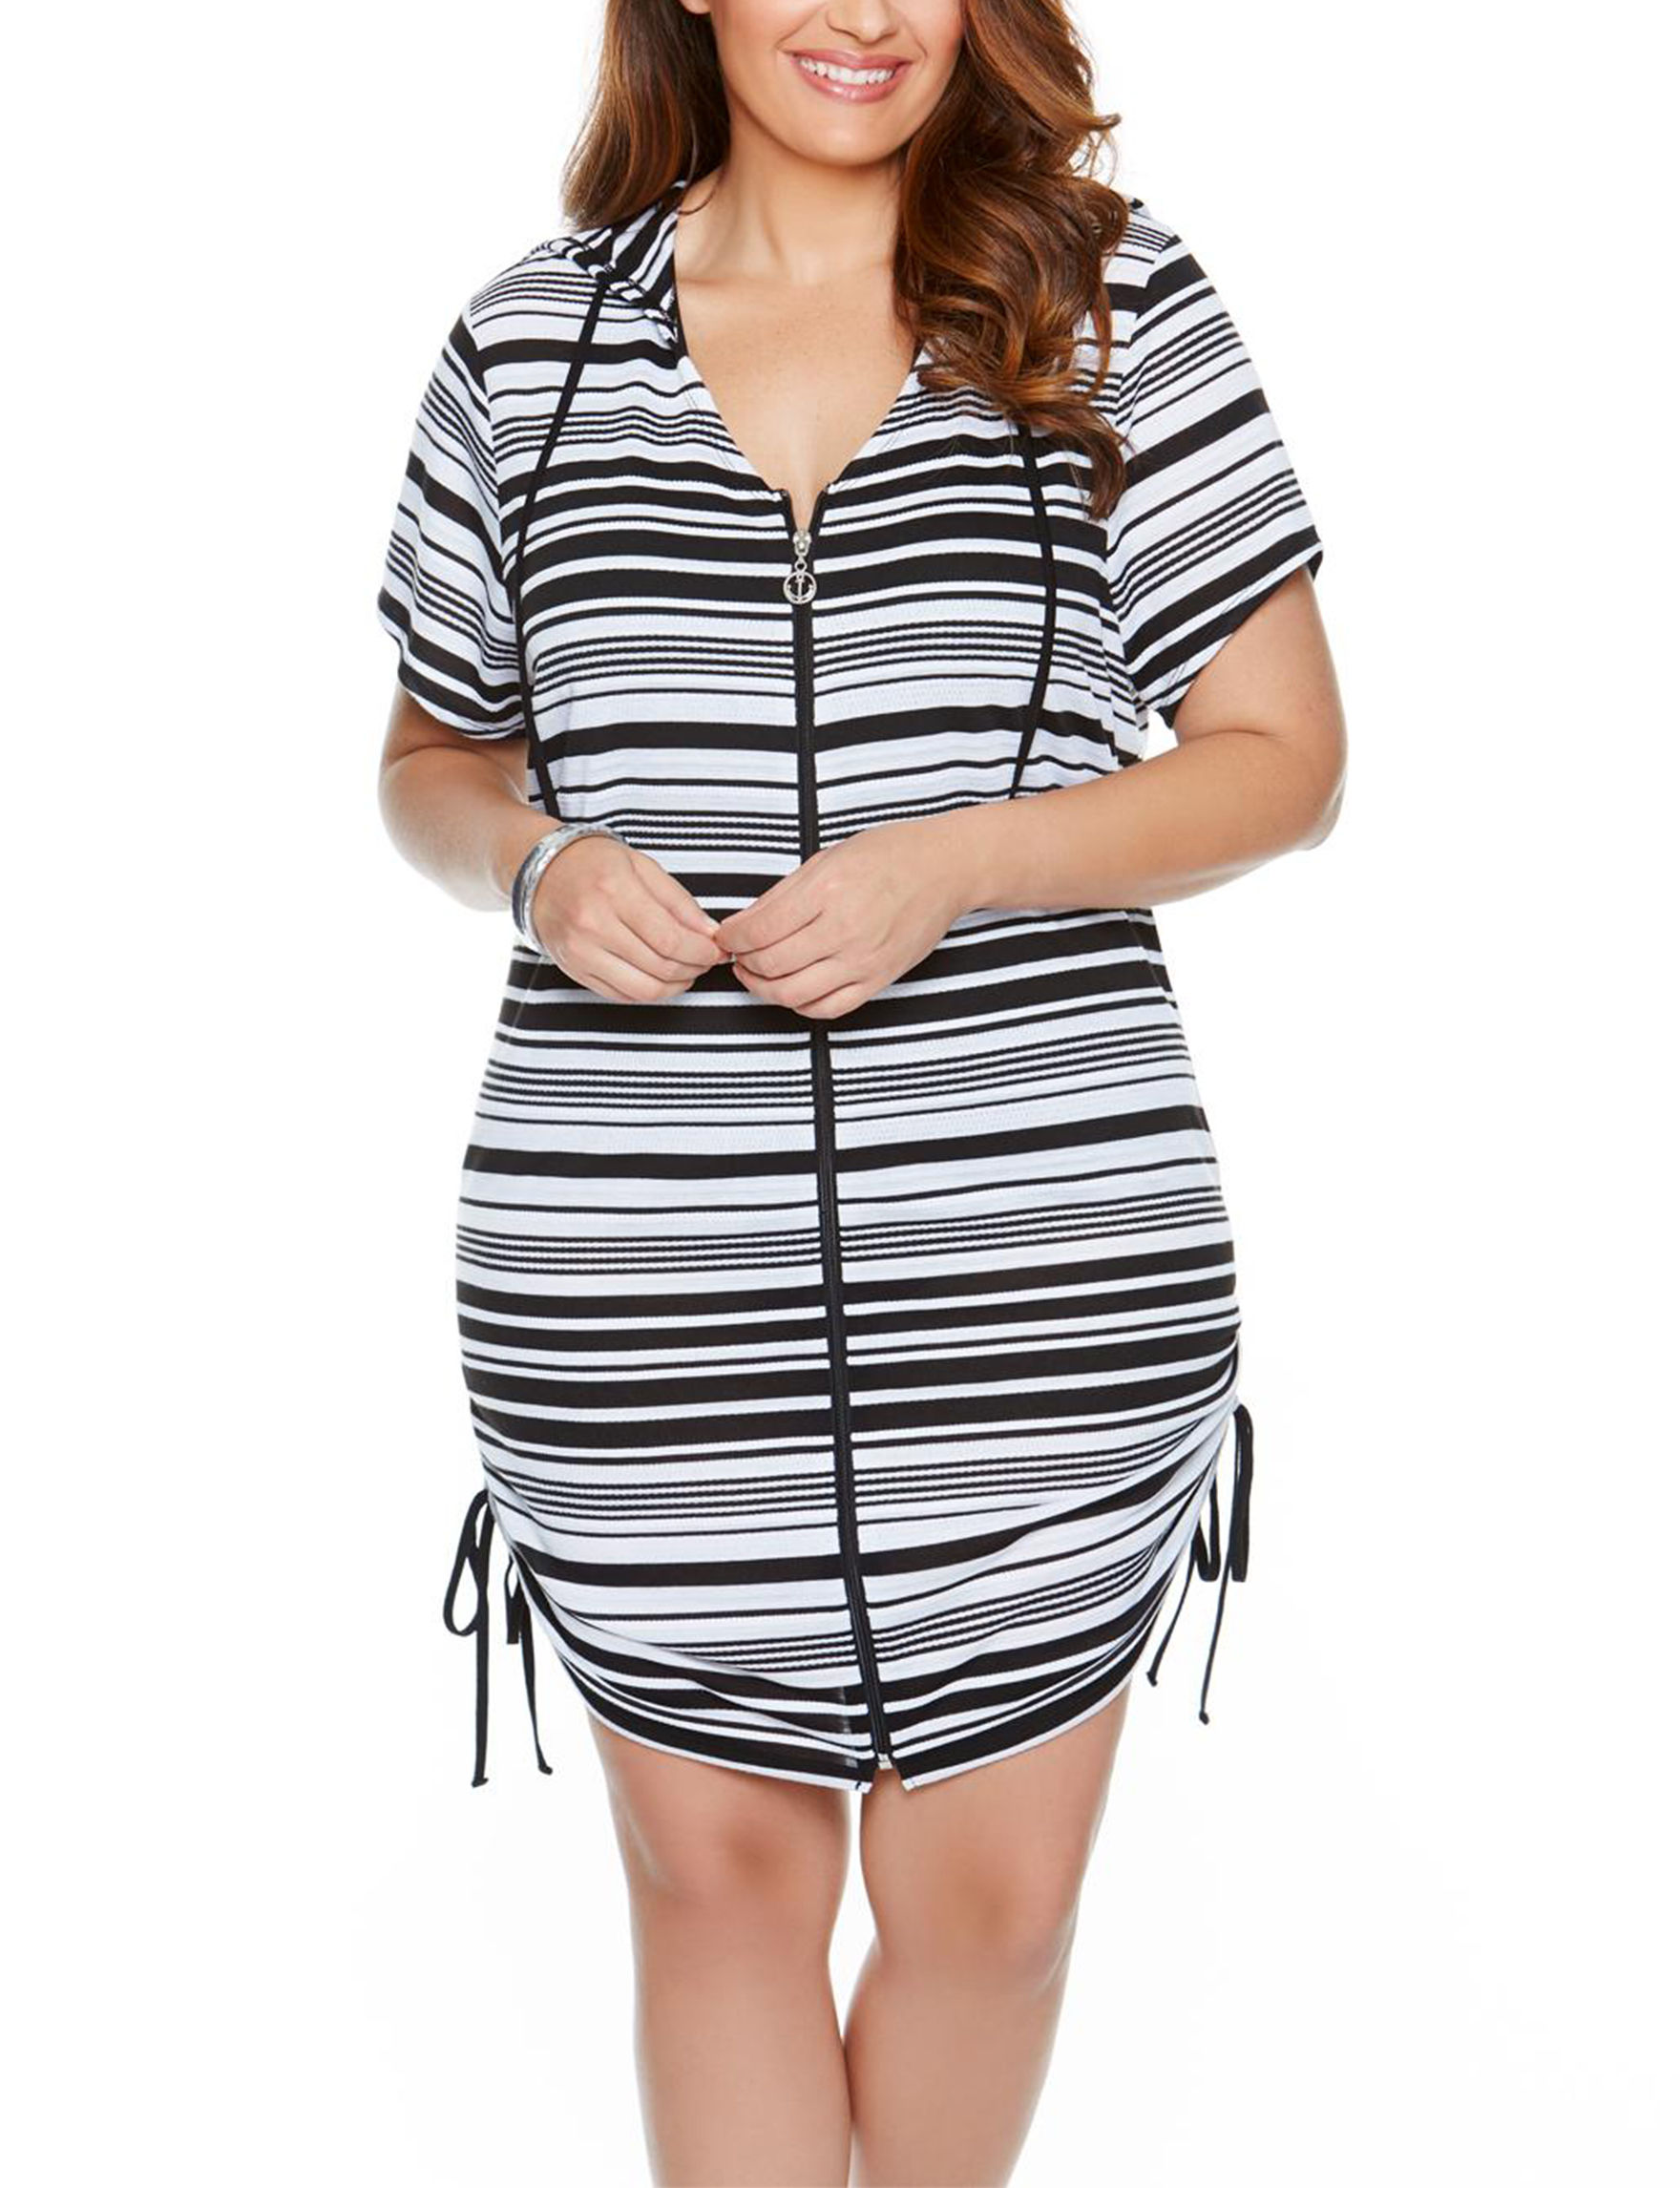 Wearbout Black / White Cover-Ups